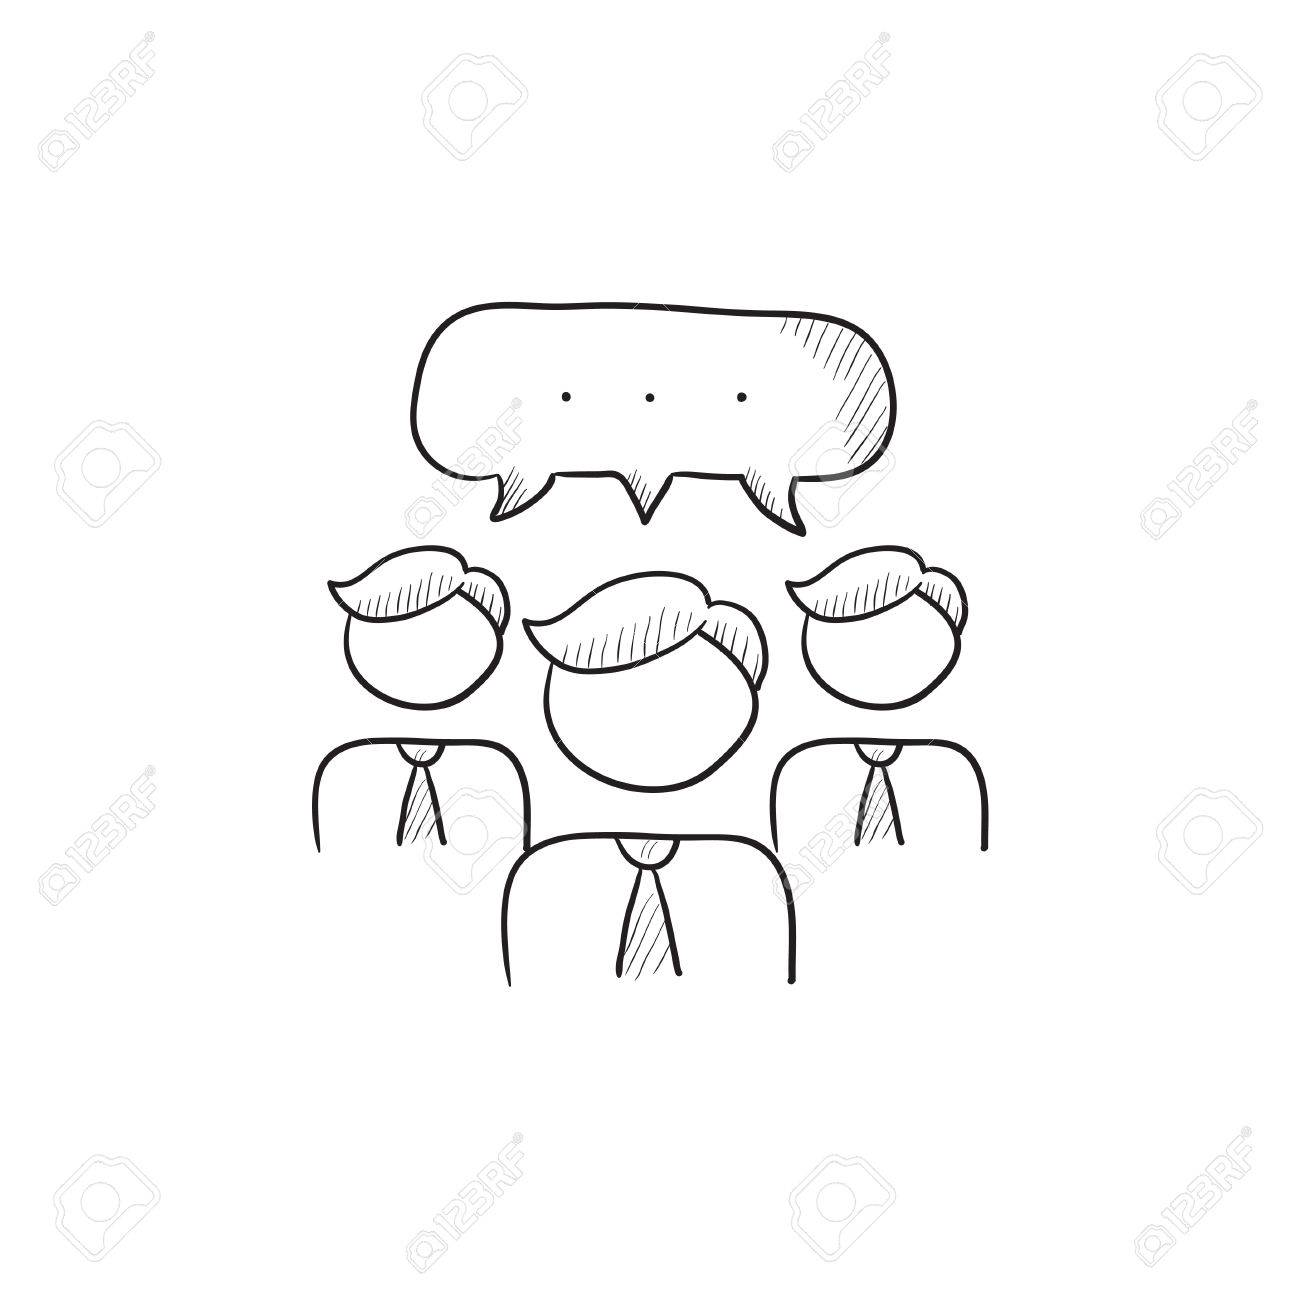 1300x1300 People With Speech Square Above Their Heads Vector Sketch Icon